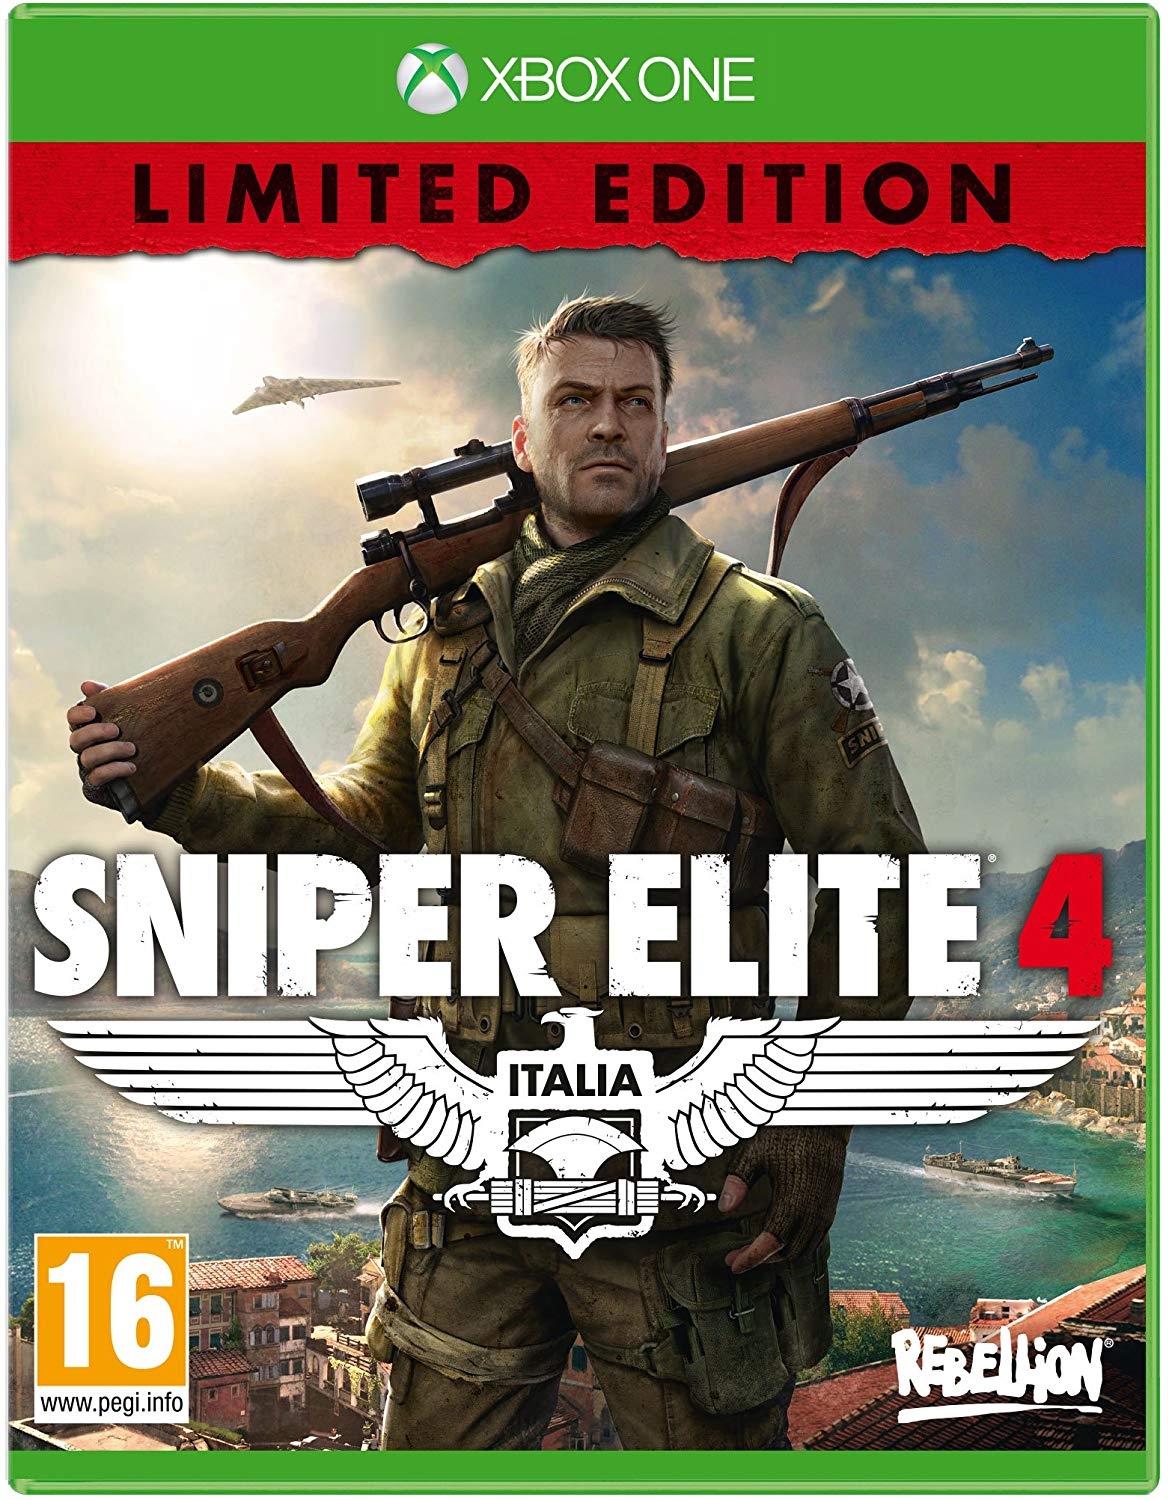 SNIPER ELITE 4 (Limited Edition) - Xone